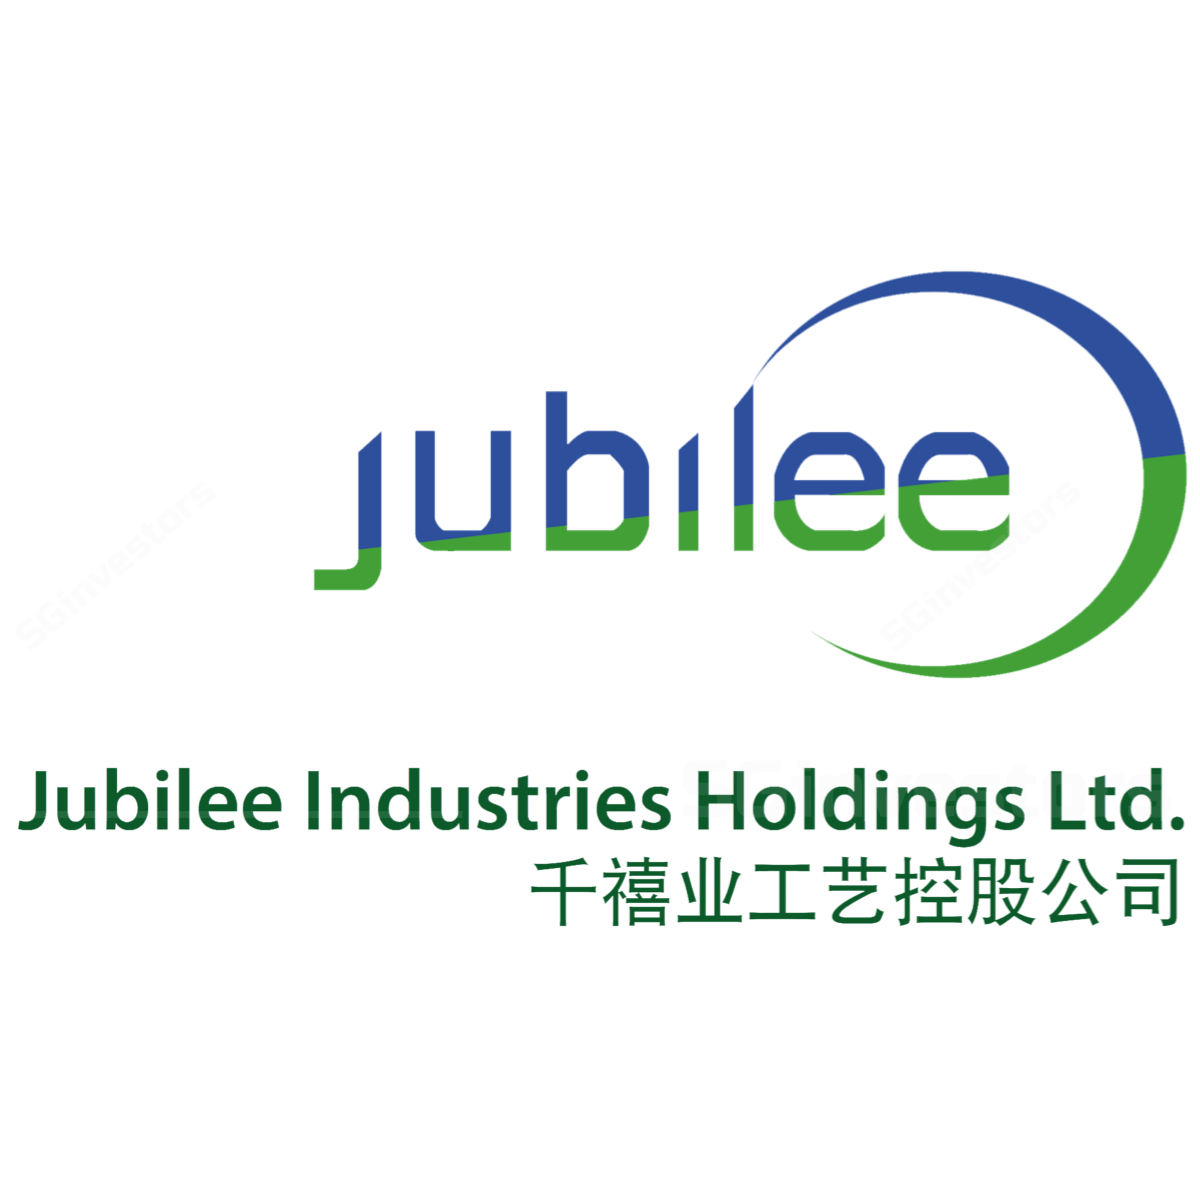 Jubilee Industries Holdings Ltd - CIMB Research 2018-03-09: Turnaround Of Plastic Manufacturer For Electronics